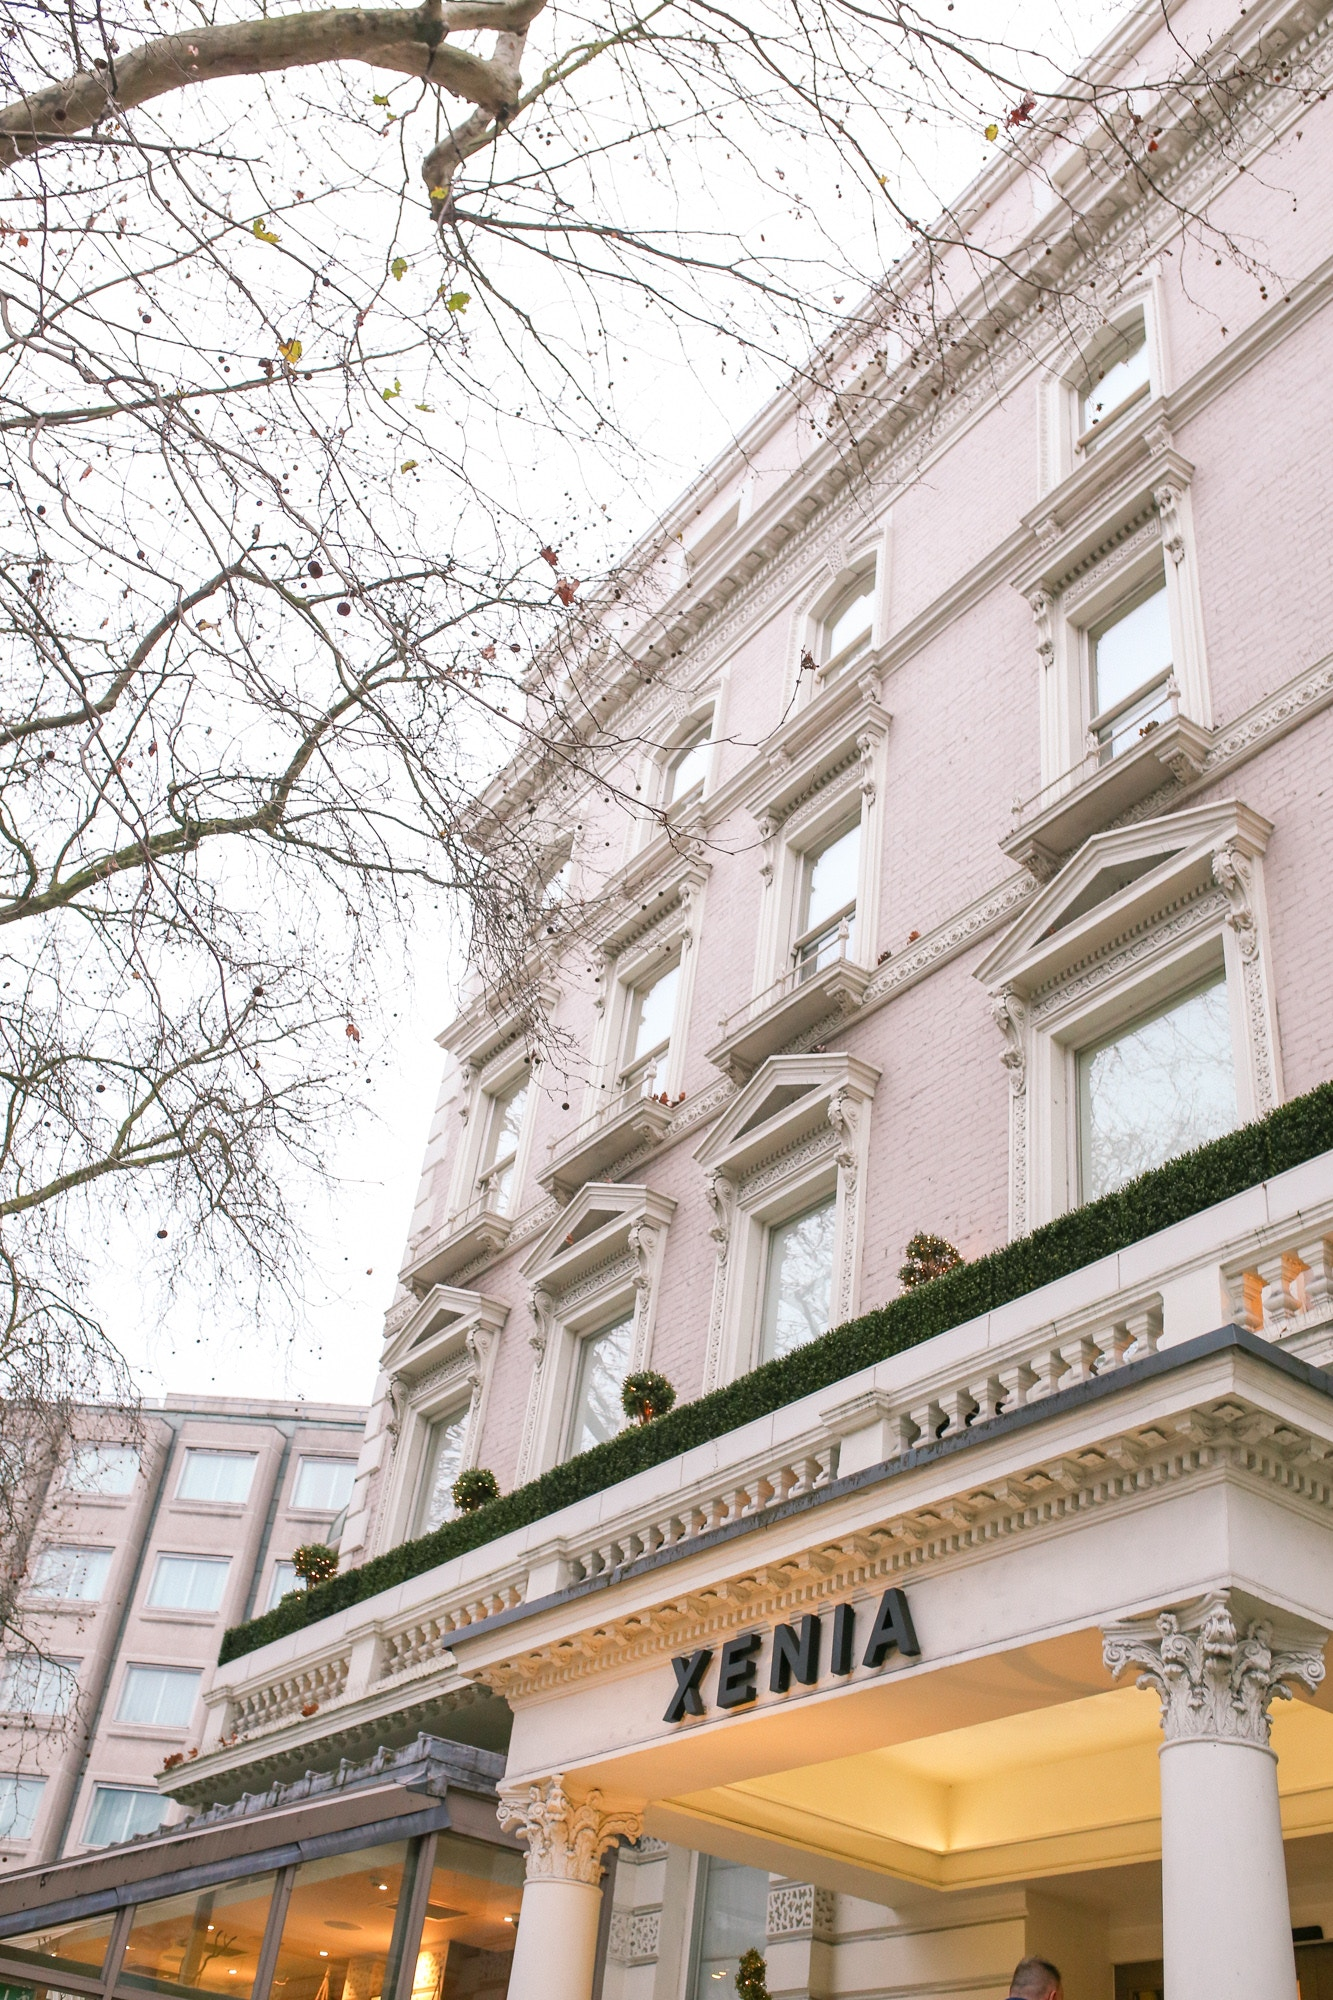 Hotel Xenia Autograph Collection London is located in a 19th Century Townhouse on Cromwell Road in Kensington. Check out my post for a full review of this boutique-style hotel from Marriott.